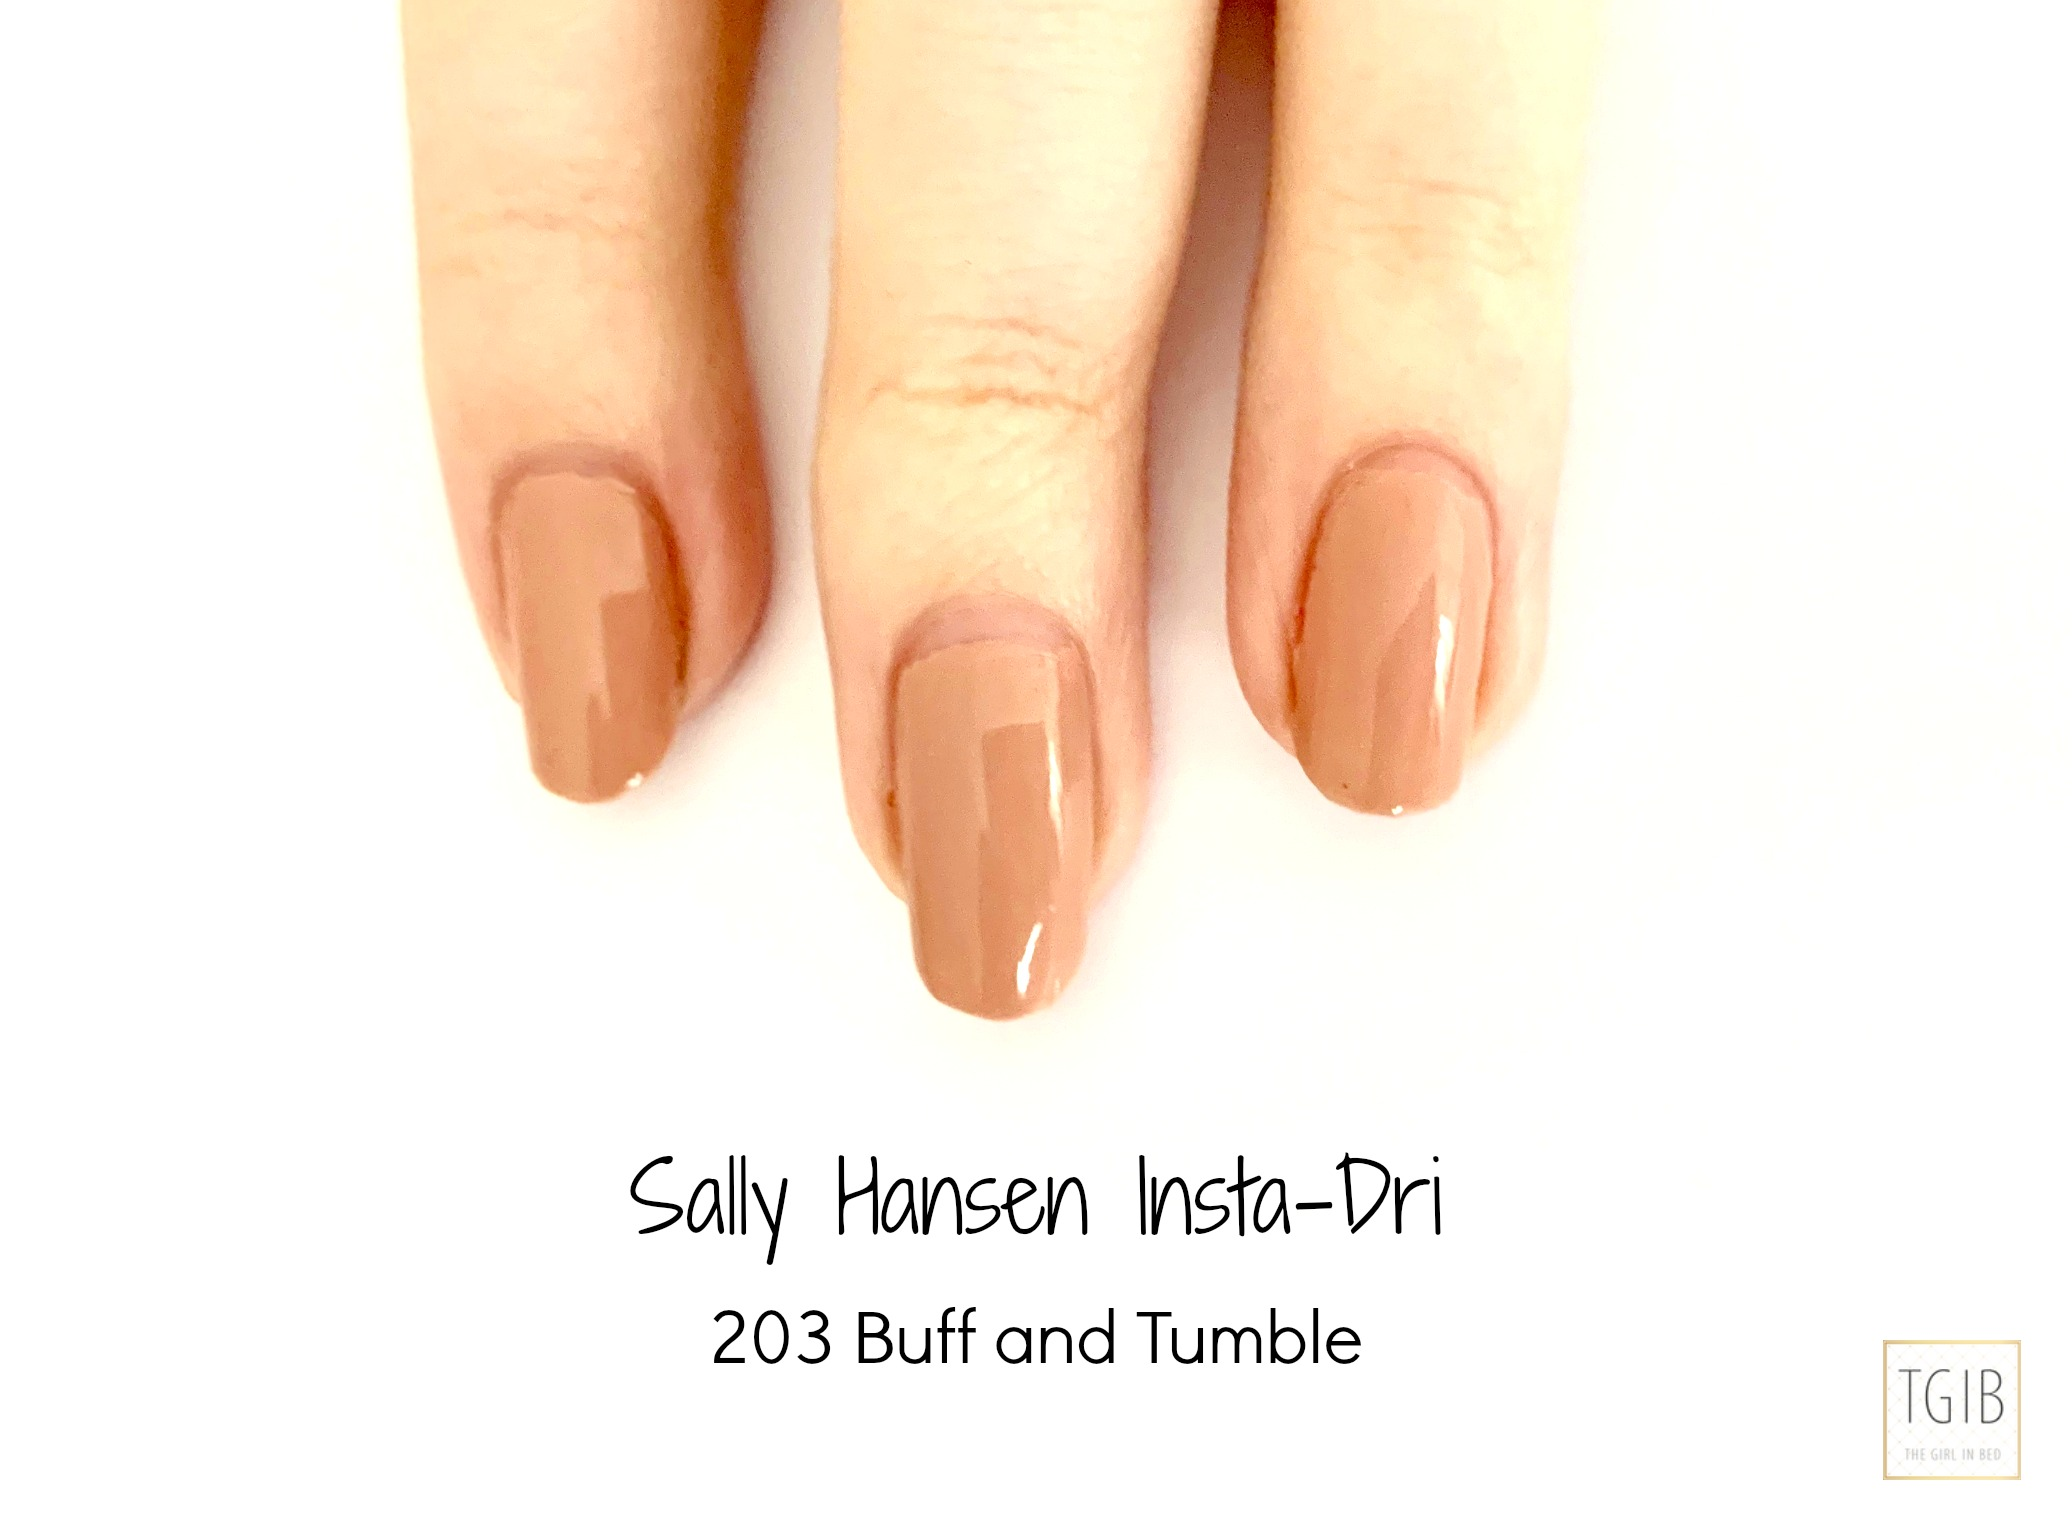 Sally Hansen Insta-Dri Nagellak Review Swatch Buff and Tumble